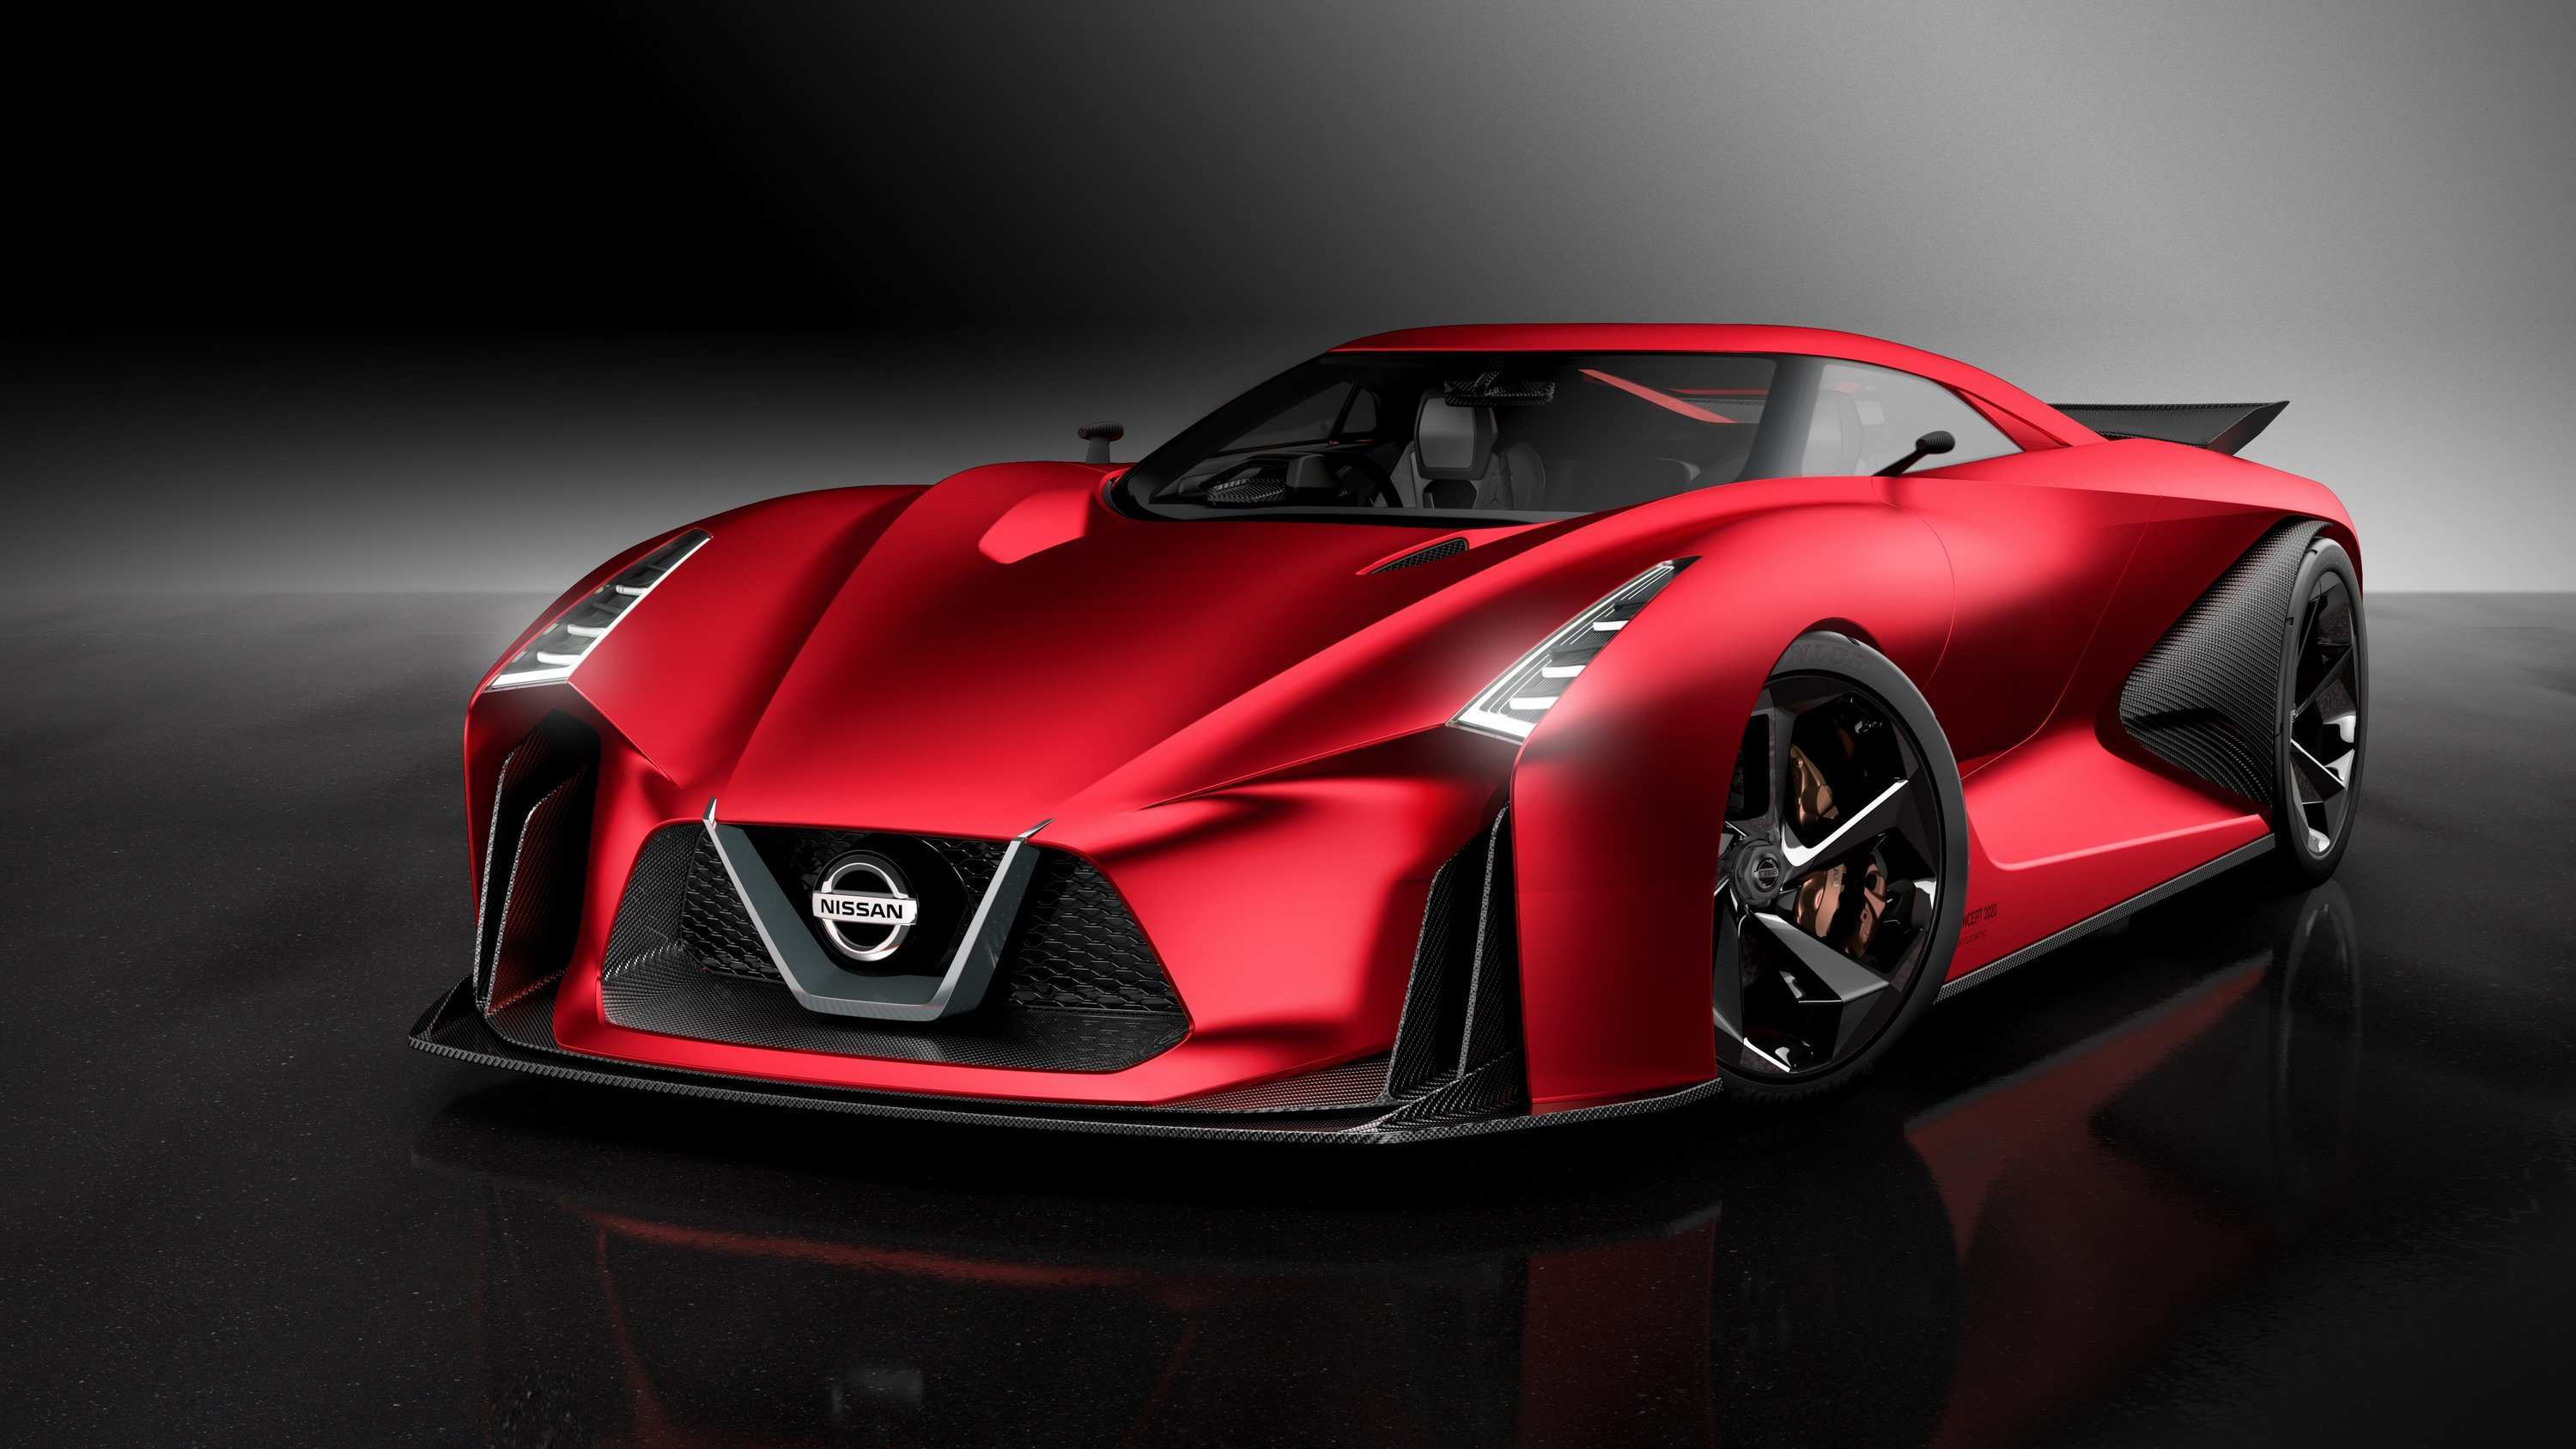 96 Best Review Nissan 2020 Gtr Configurations with Nissan 2020 Gtr